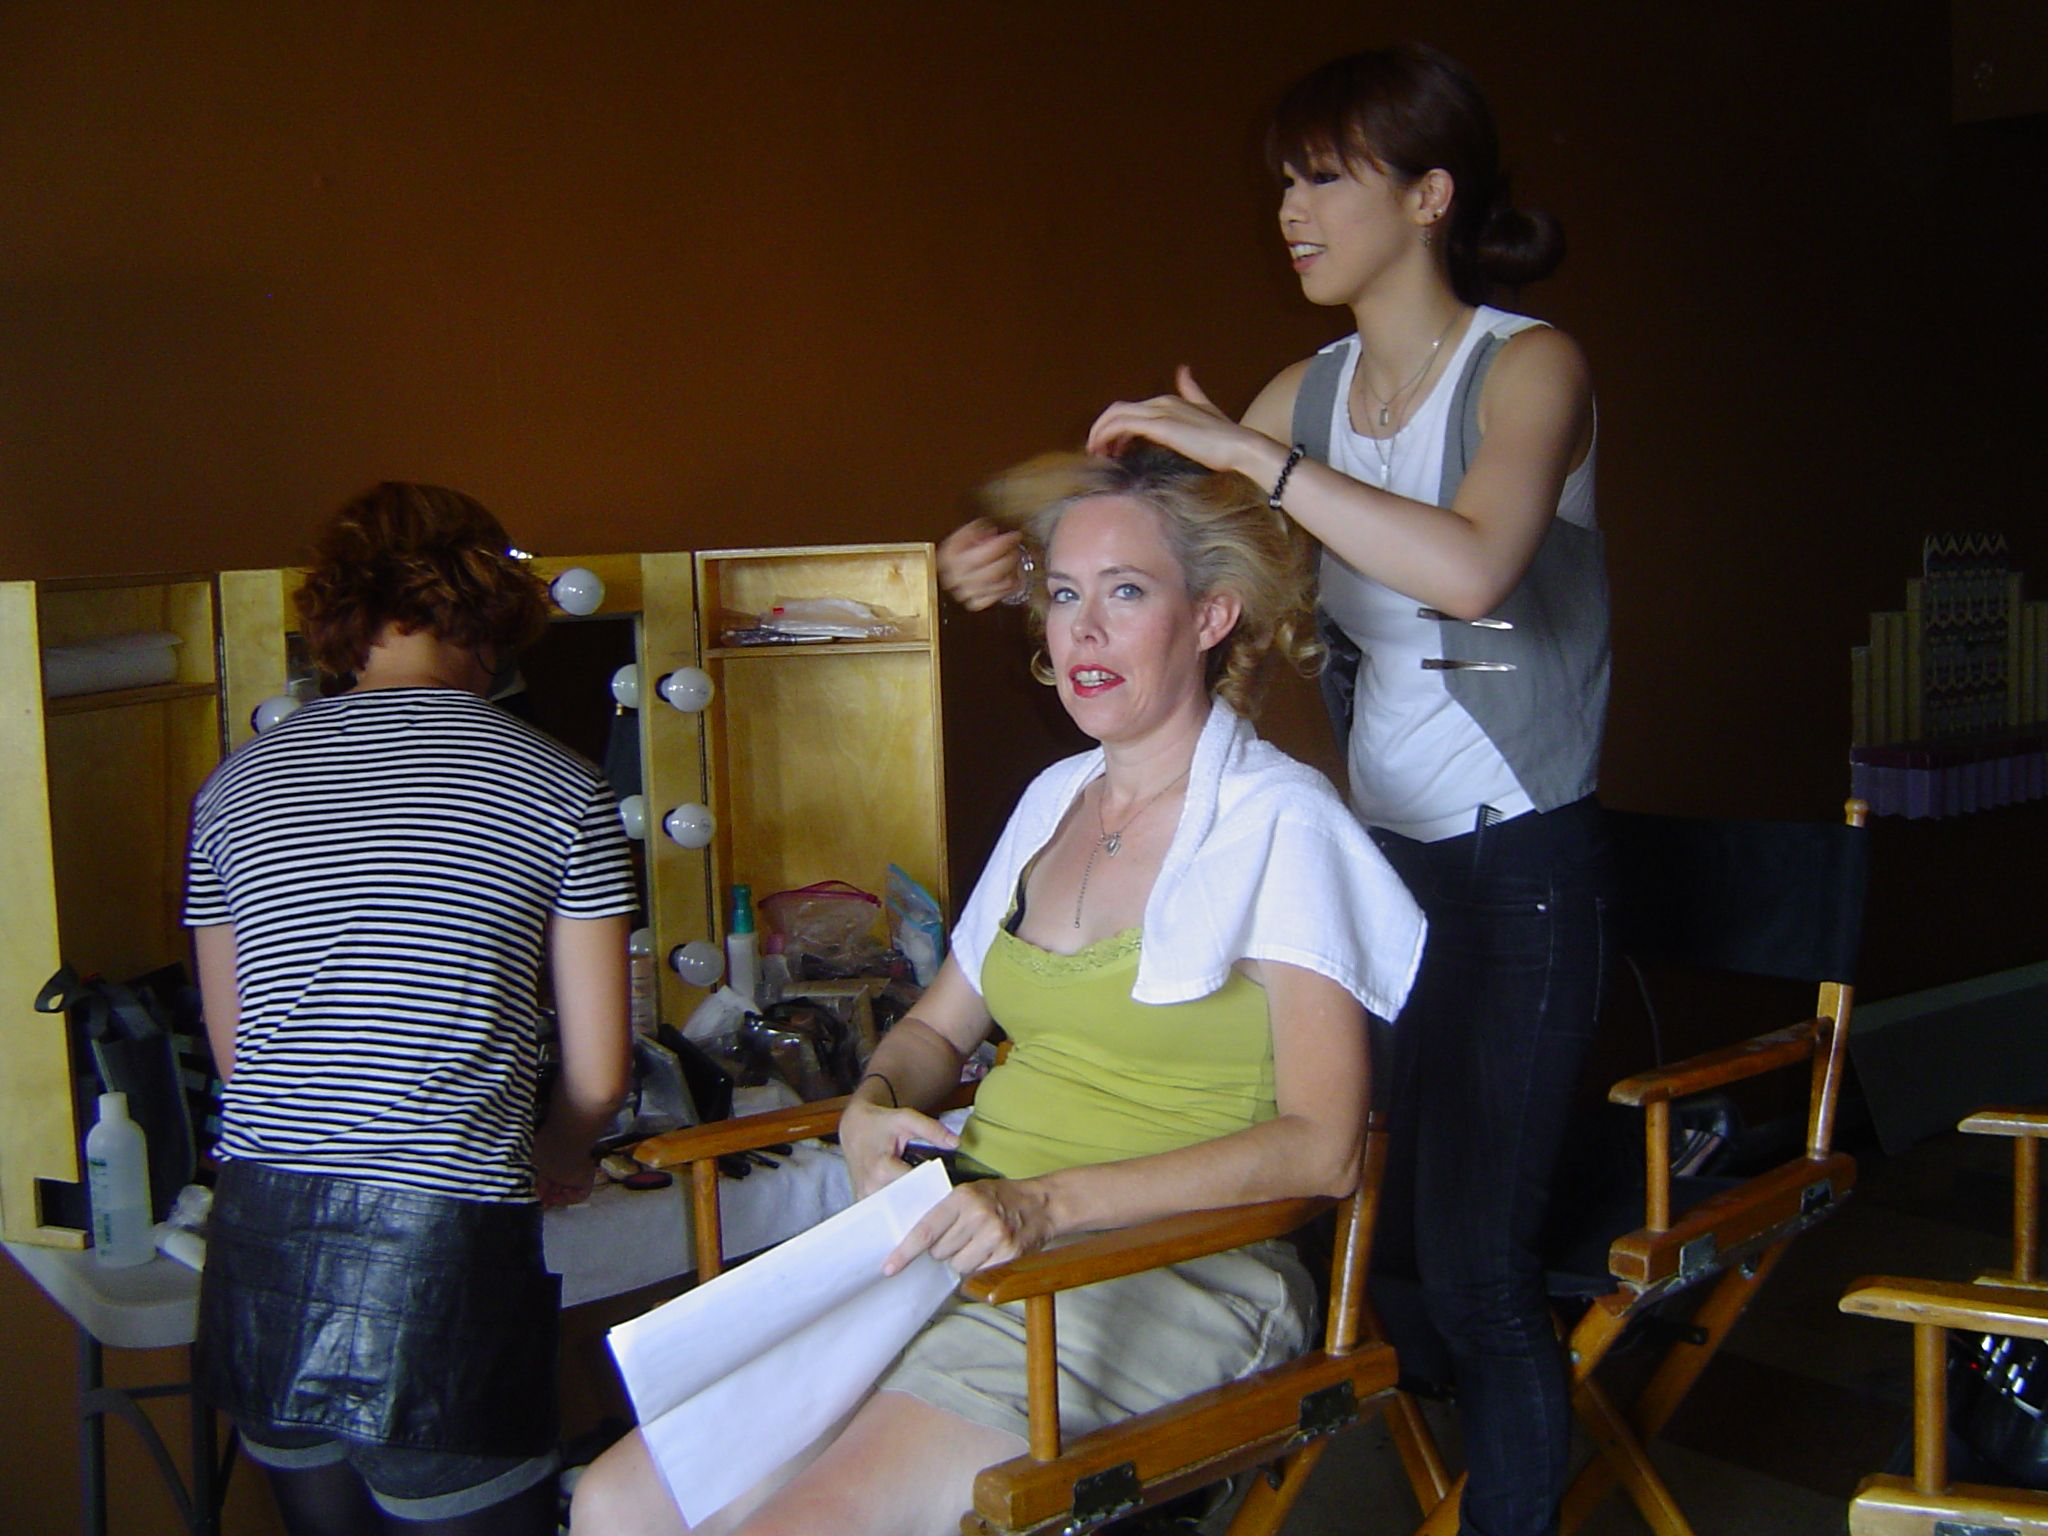 Maria Olsen in make-up for We Are The In Crowd music video ''Rumor Mill.''